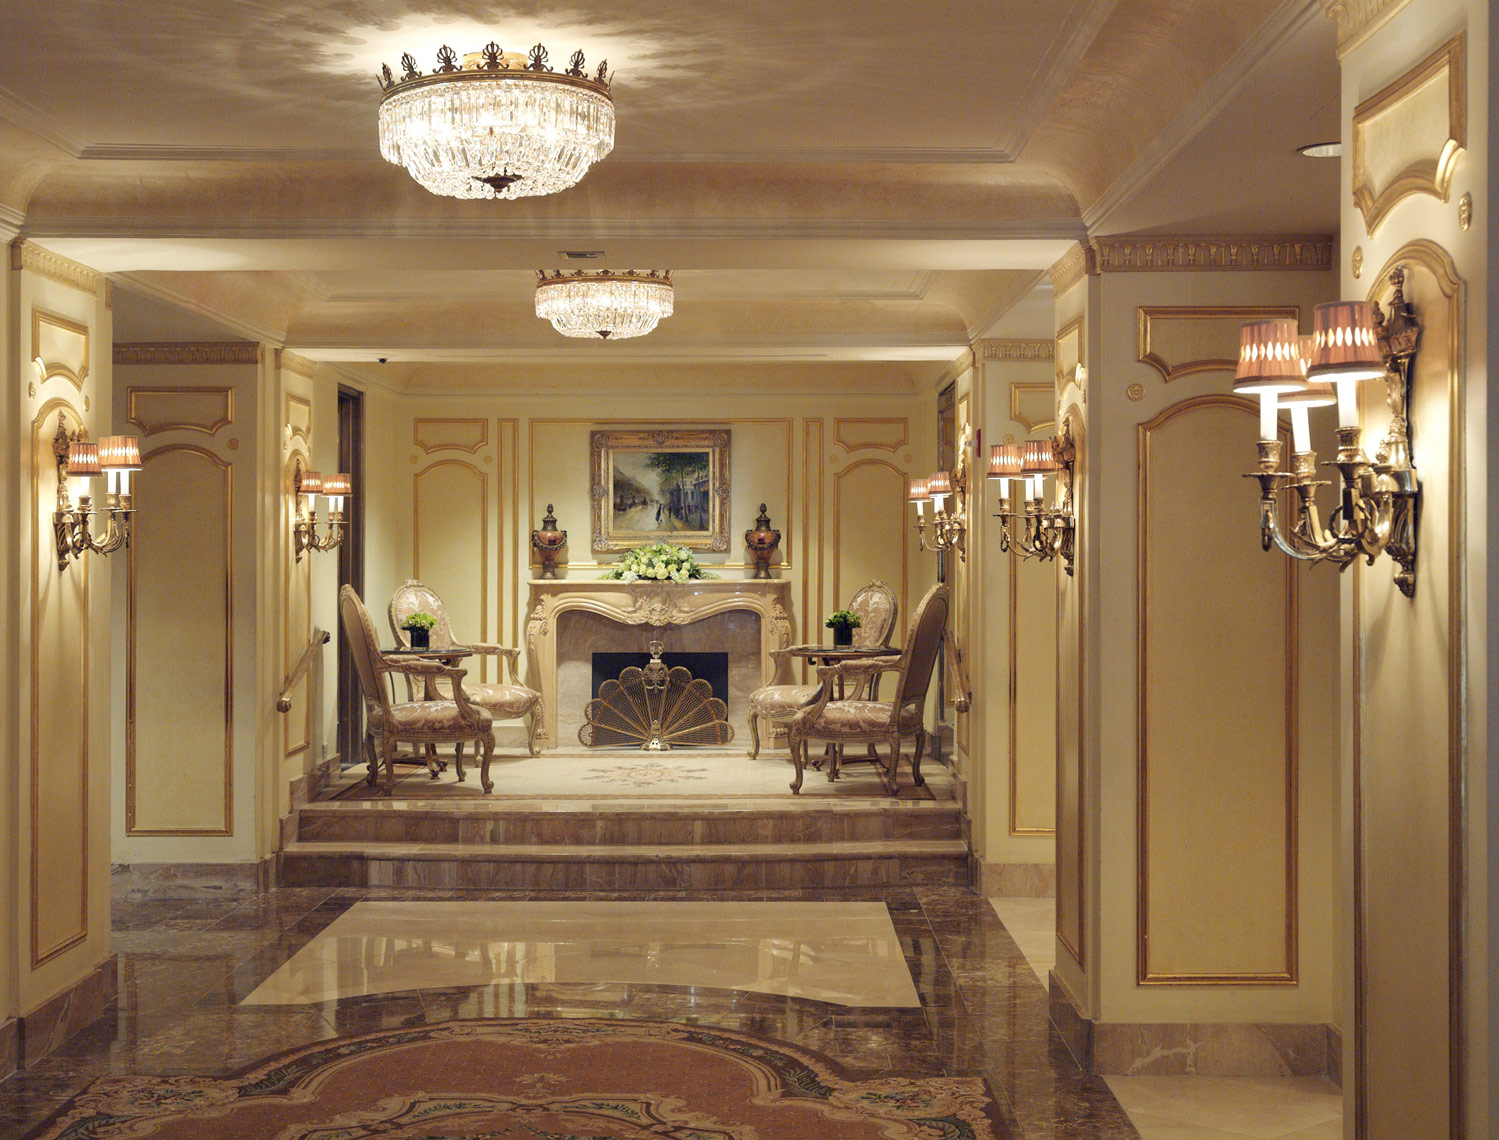 Waldorf Towers Lobby, New York, Interior Design by Kenneth E. Hurd & Associates